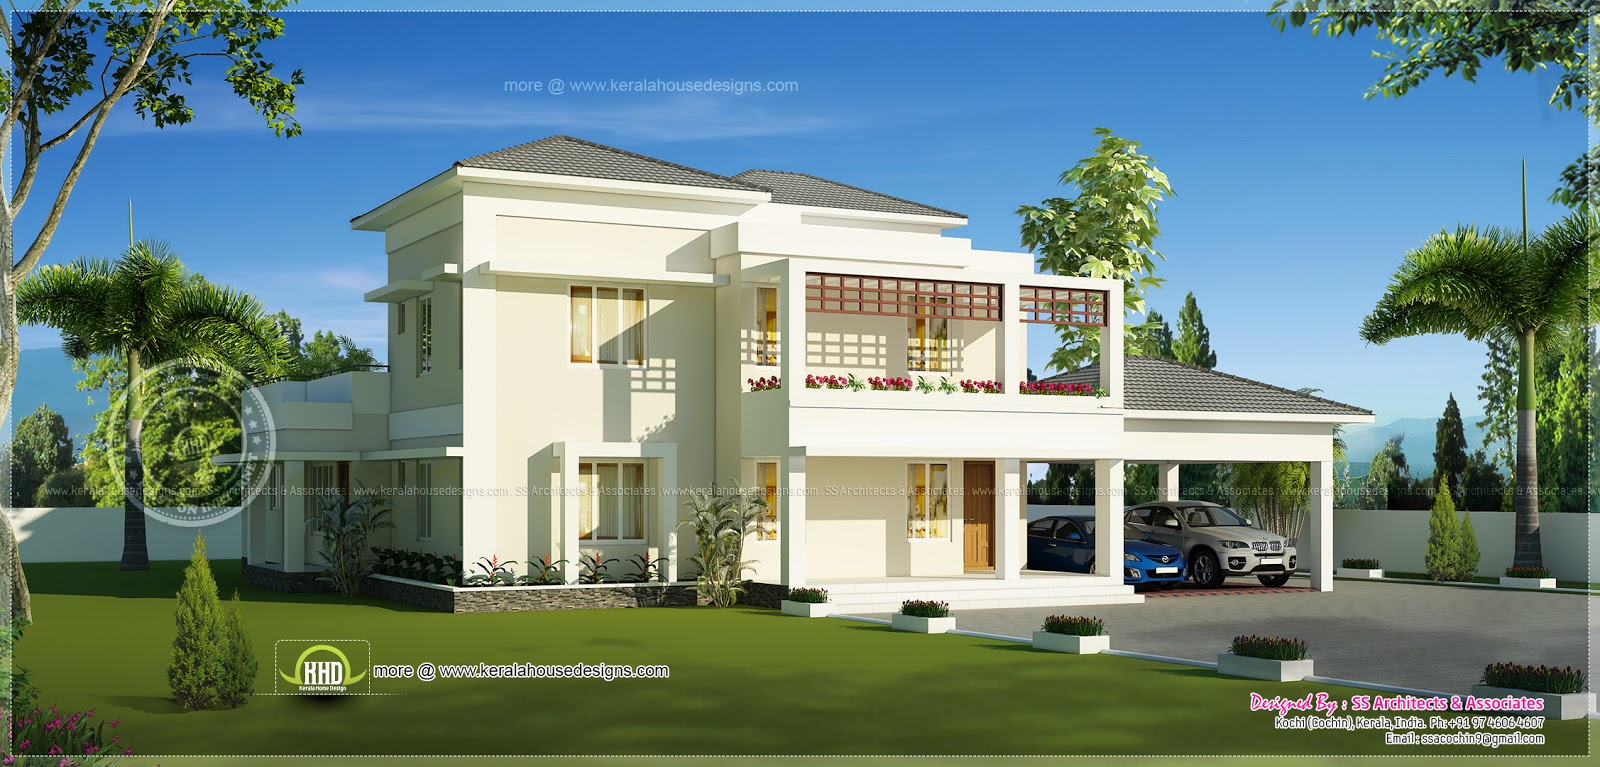 double-storey-villa Kerala Home Plans With Front Porch on home plans with study, home plans with carport, home plans with windows, home plans with vaulted ceilings, home plans with den, home plans with front portico, home plans with covered patio, home plans with exterior, home plans with library, home plans with rooftop deck, home plans with side porch, home plans with barn, home plans with large rooms, home plans with pool, home plans with breakfast nook, home plans with french doors, home plans with basement, home plans with staircase, home plans with open floor plan, home plans with master bathroom,